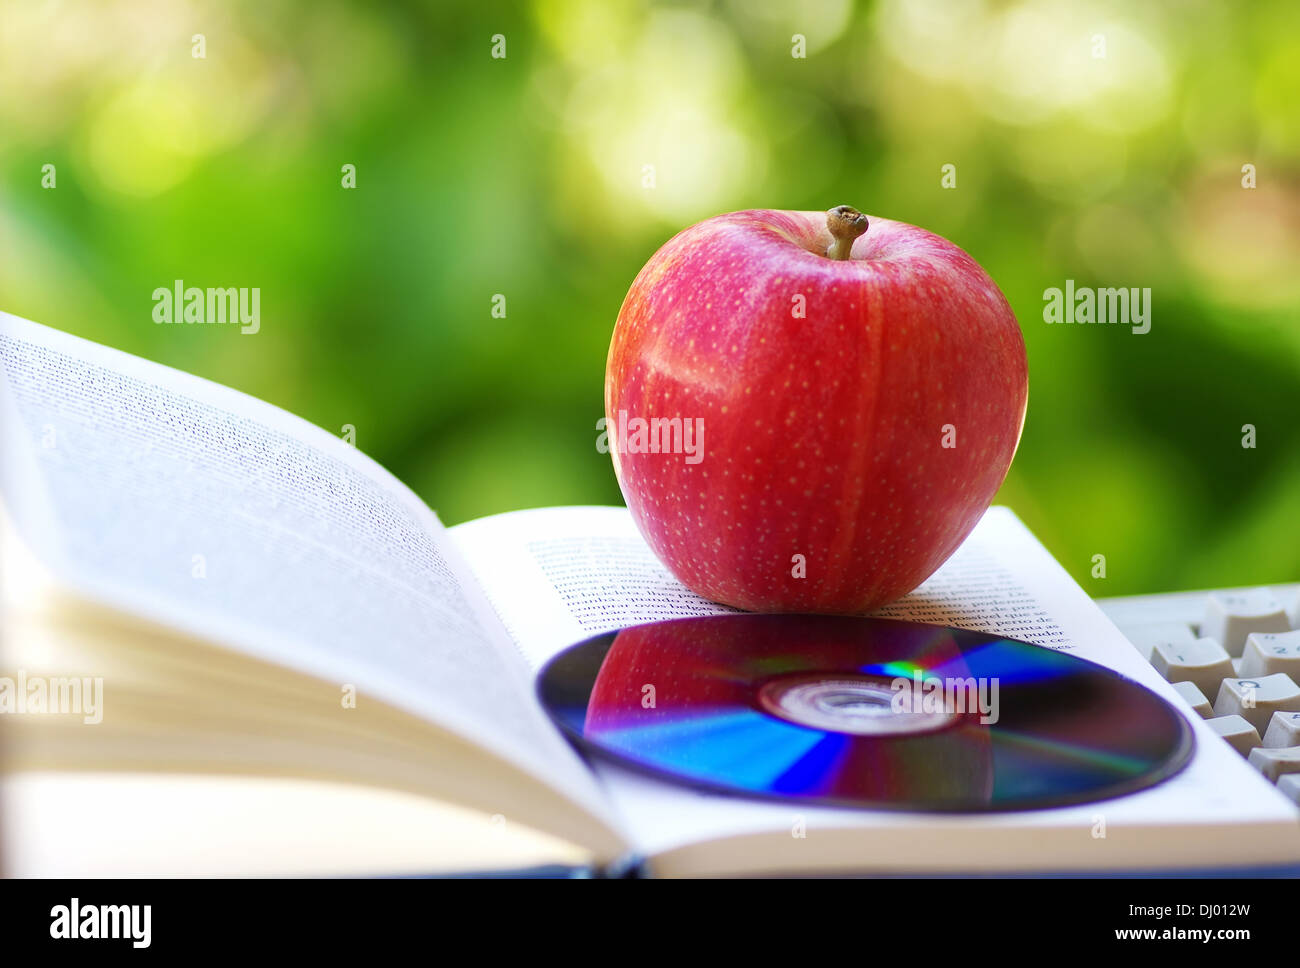 Ripe apple, dvd, and open book - Stock Image